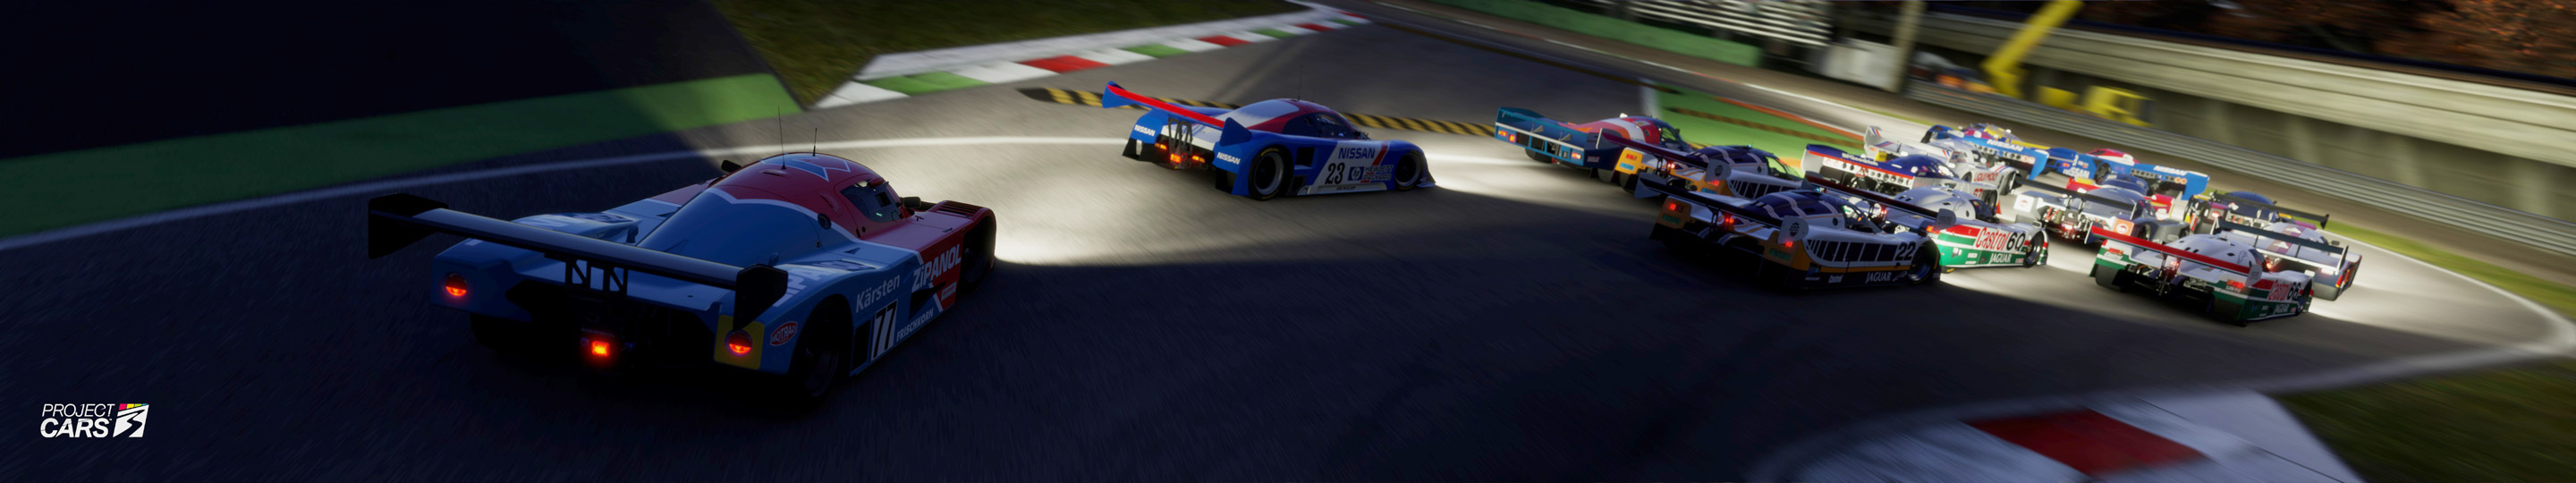 1 PROJECT CARS GROUP C at MONZA copy.jpg